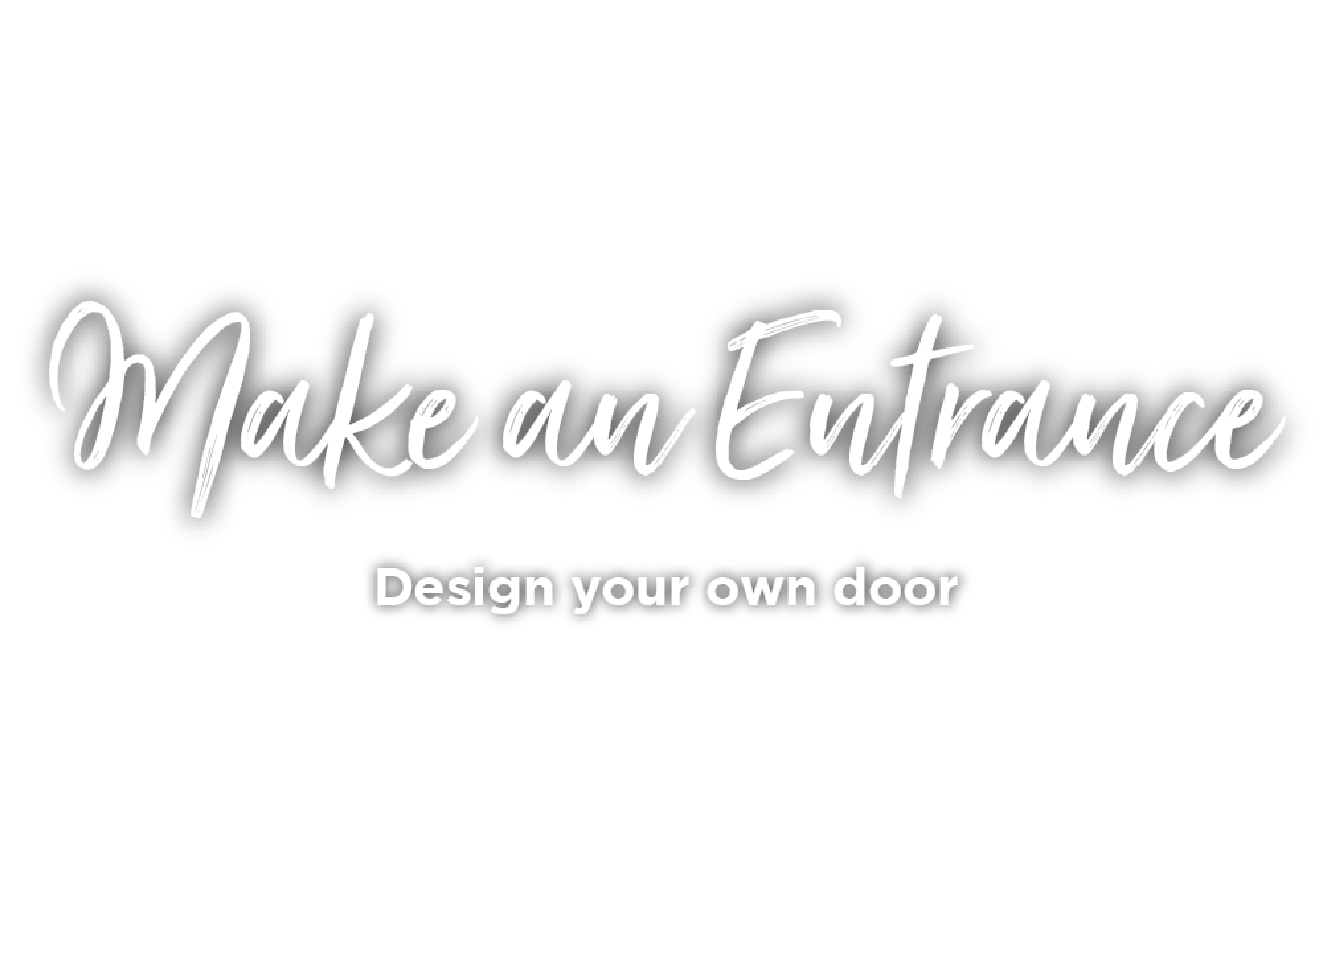 Design Your Own Door for Free